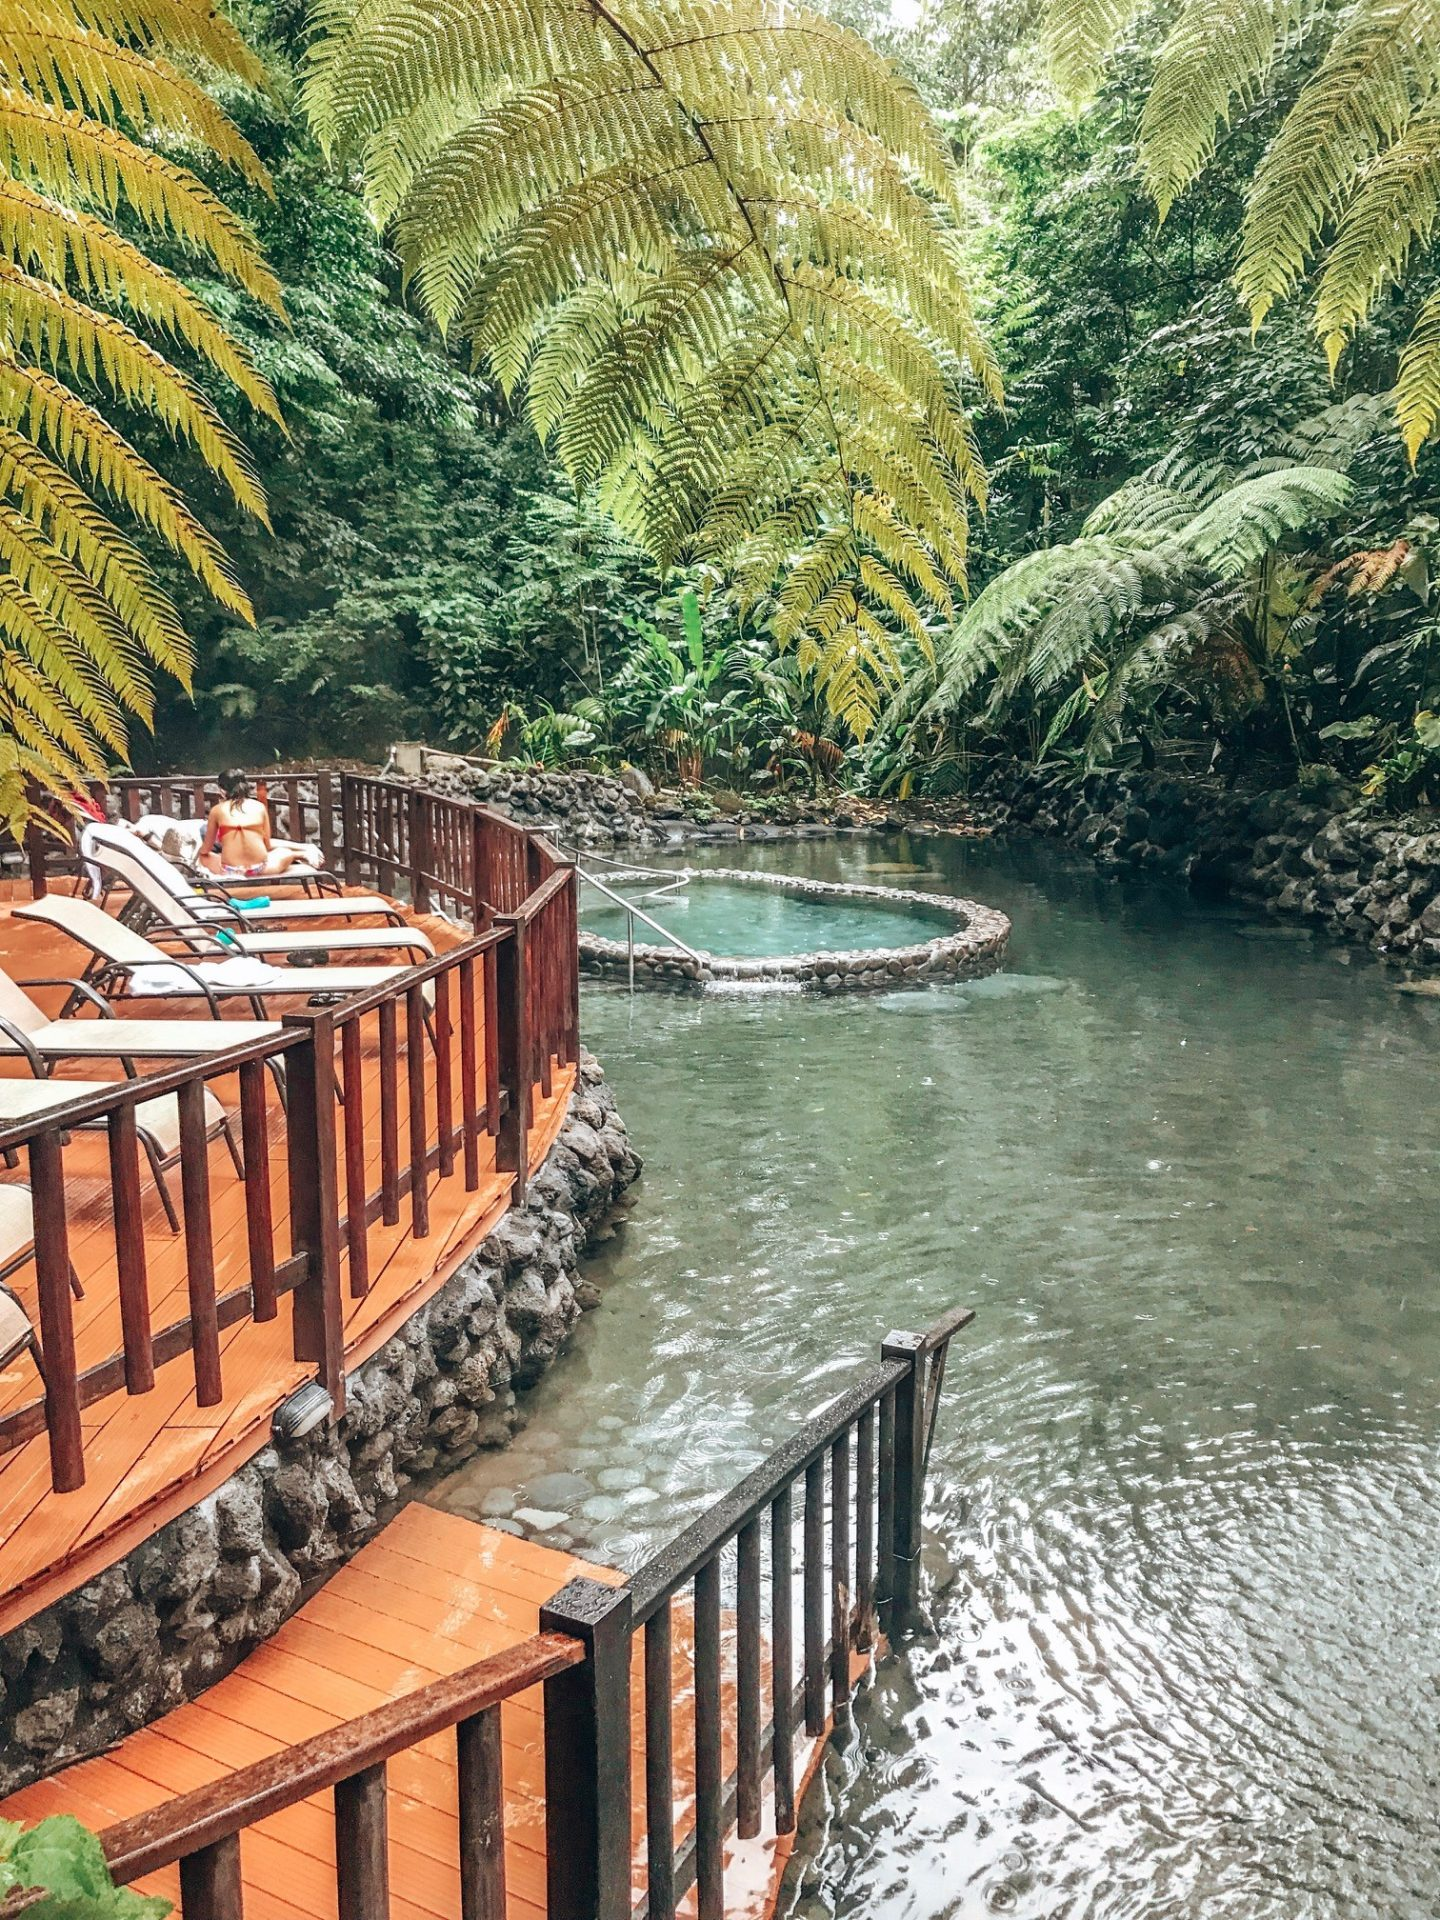 Hot Springs at La Fortuna, Costa Rica